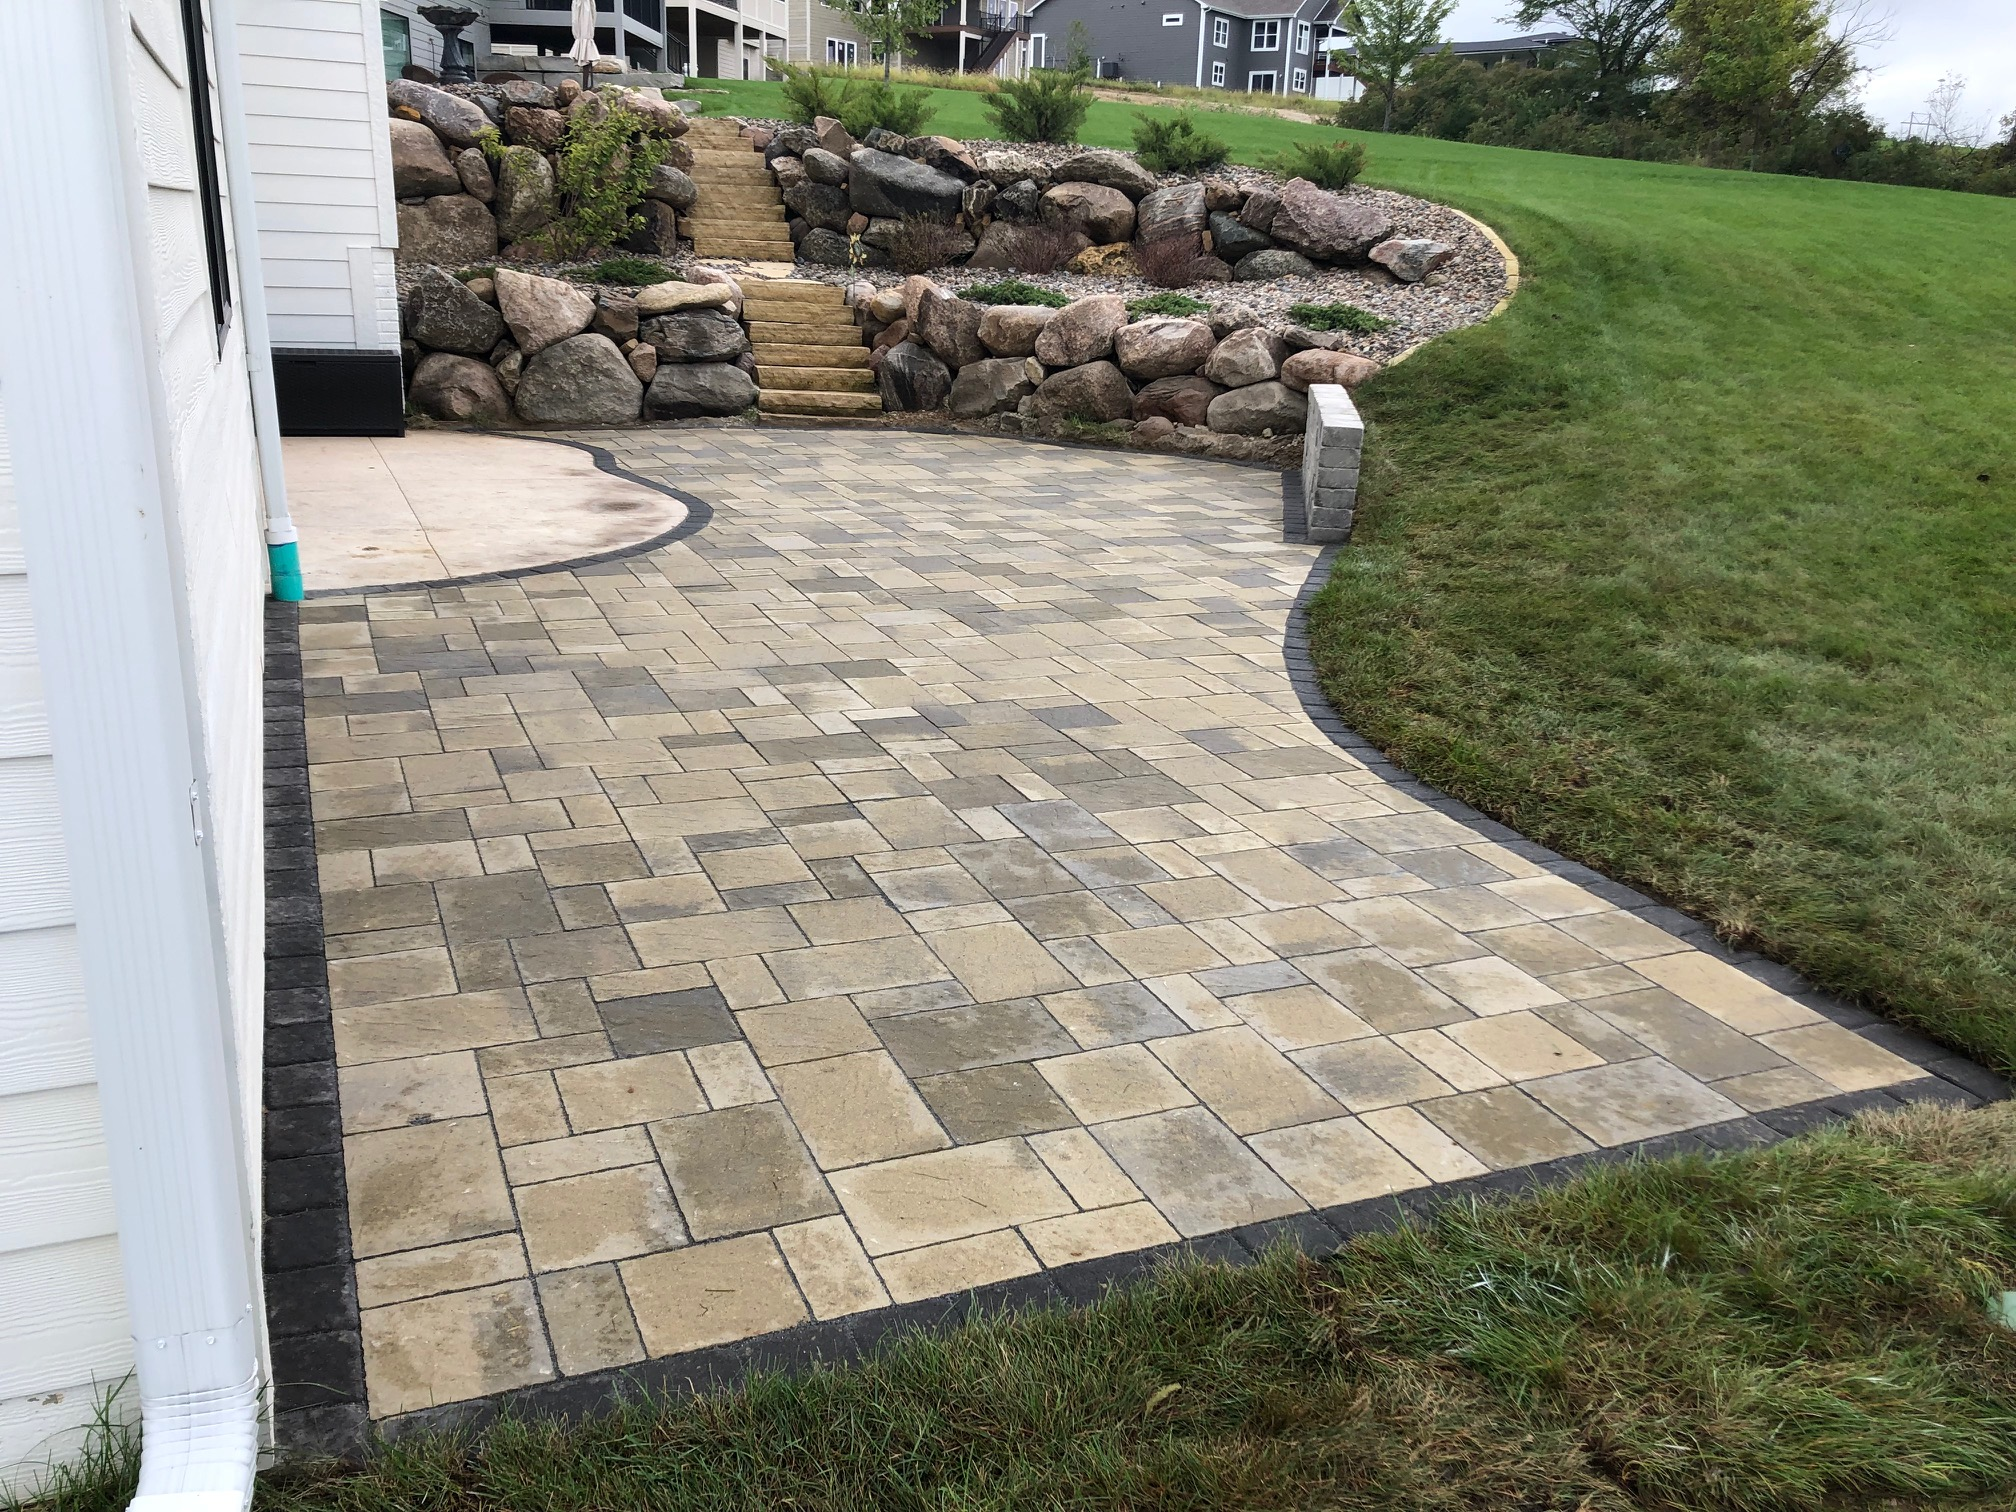 Patio & Firepits (7)